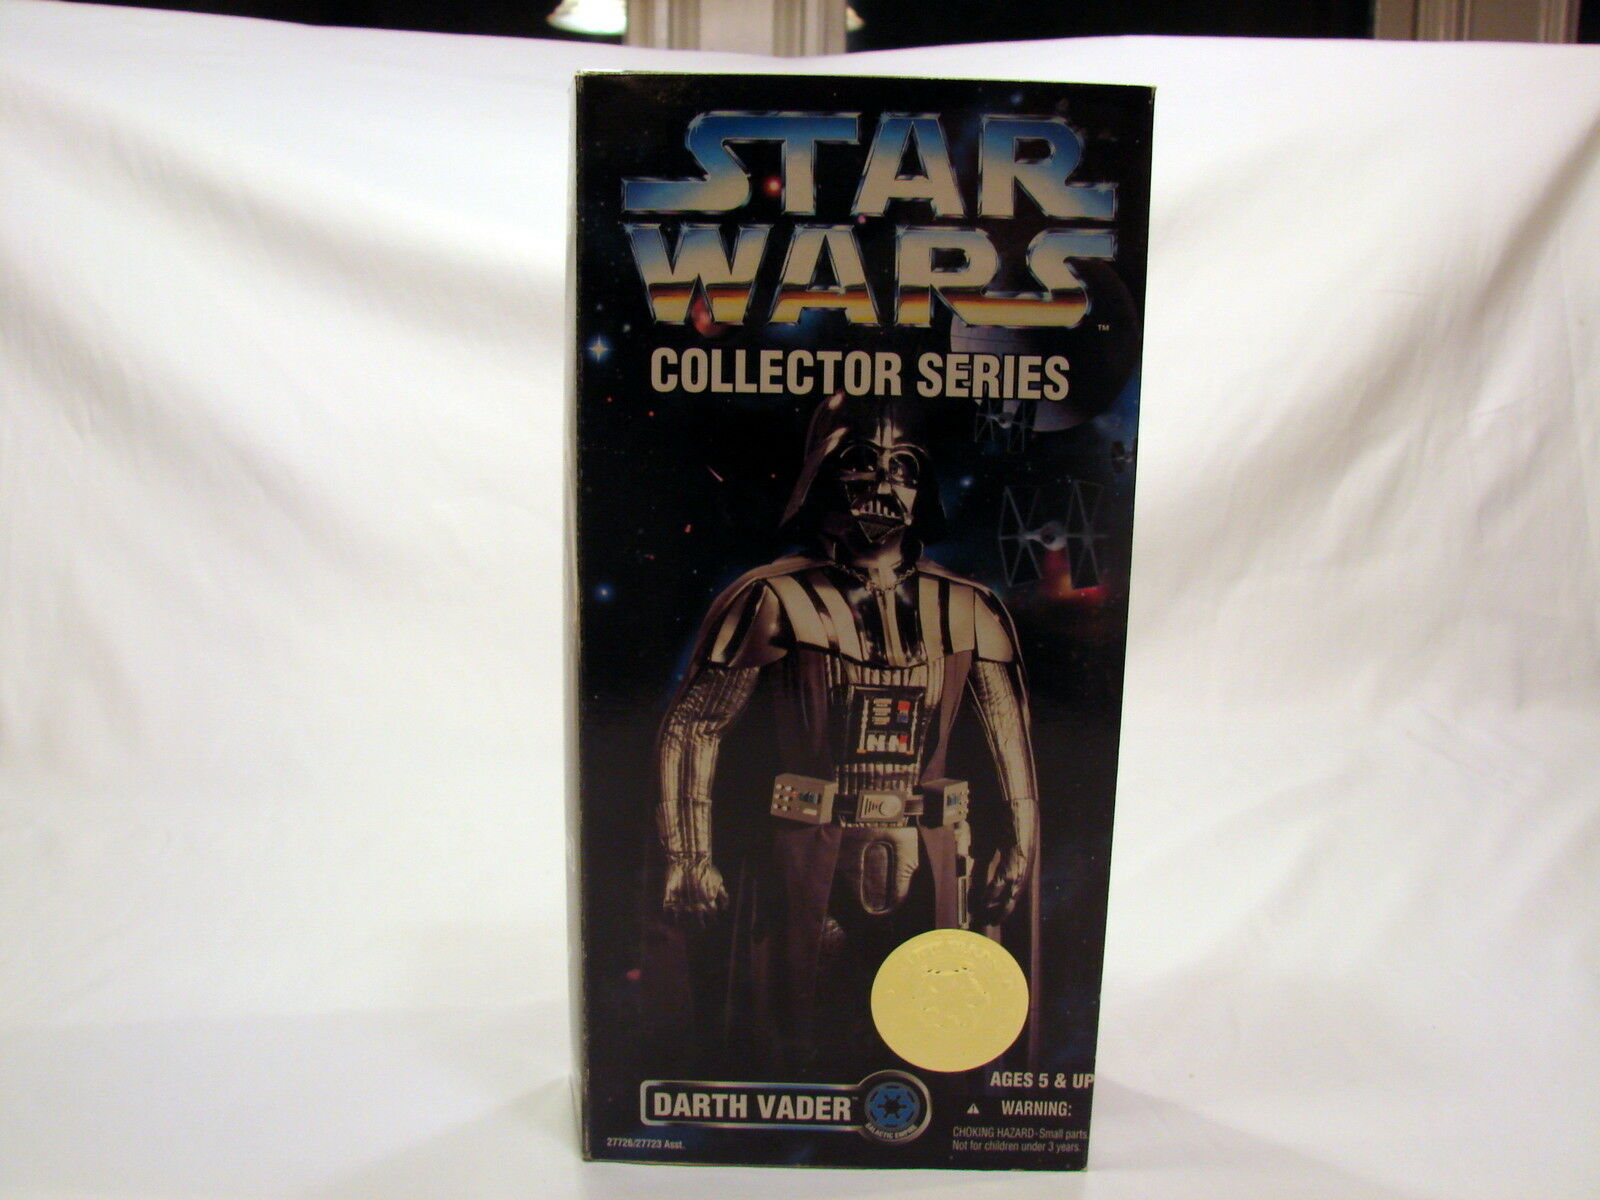 Star Wars Collector Series Darth Vader Vader Vader 12   Kenner Hasbro  MIB 1996 541f3f